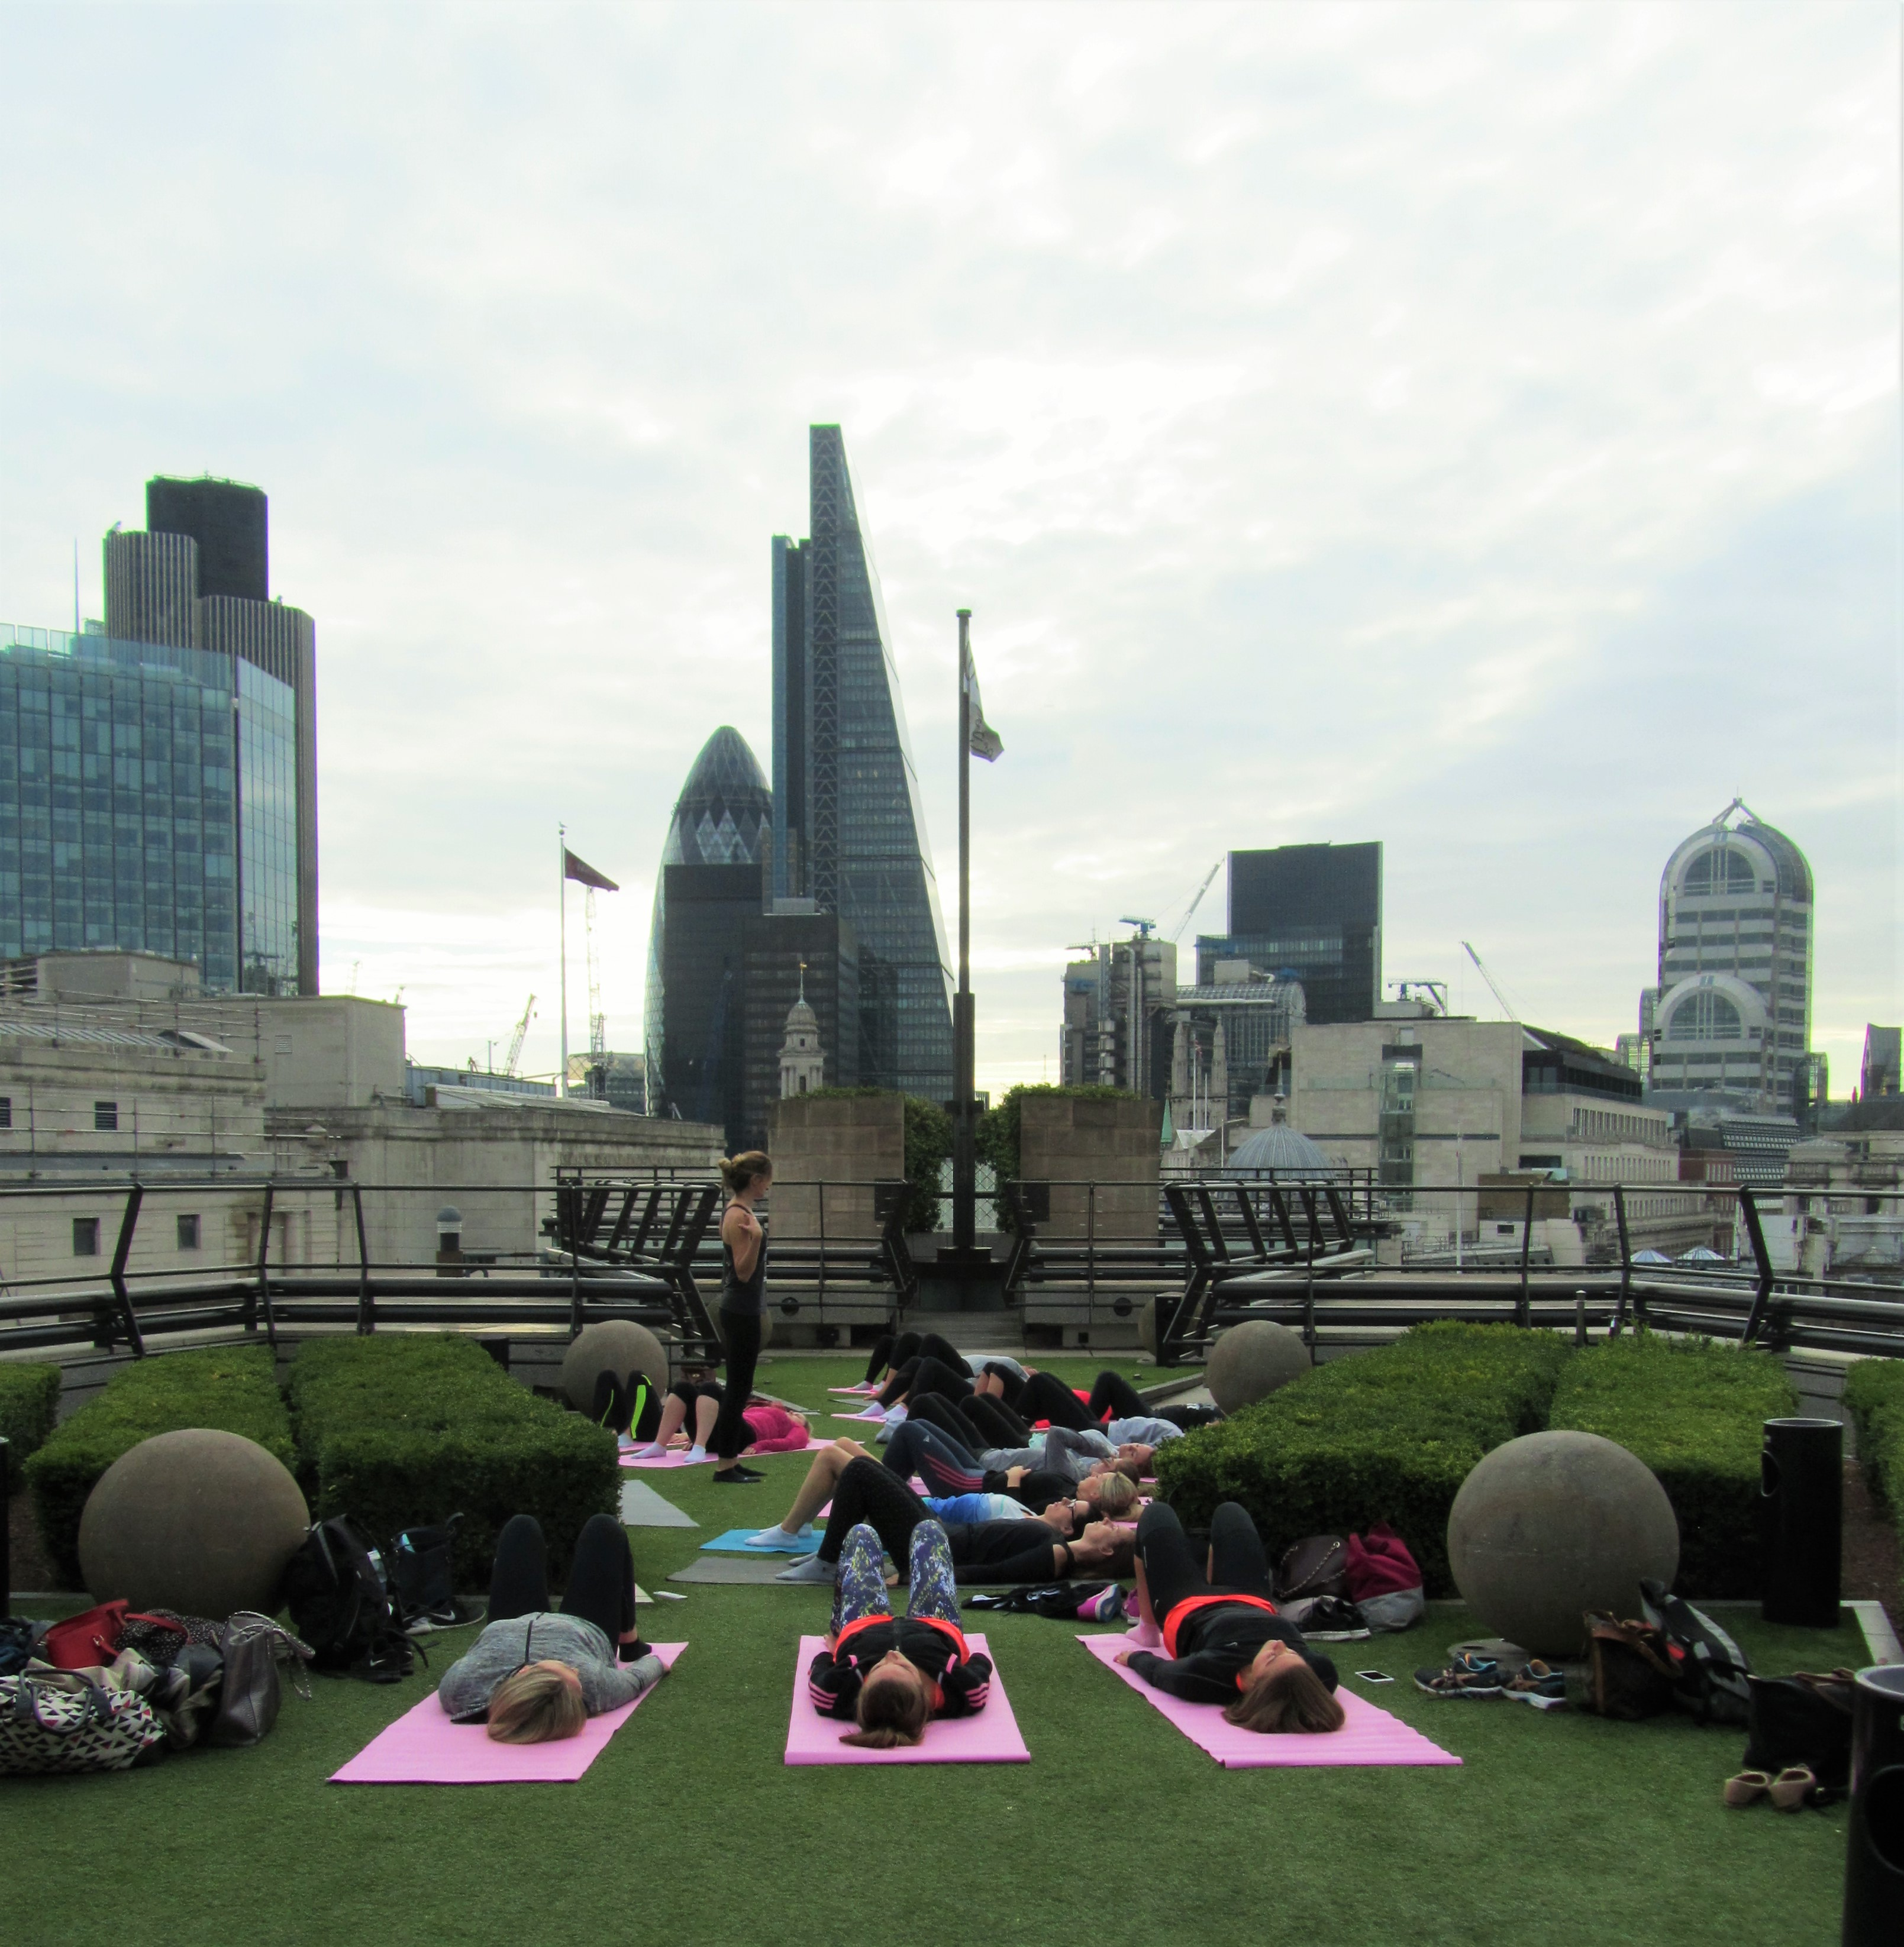 goodman-masson-staff-enjoying-pilates-with-exercise-in-the-city-at-coq-dargent